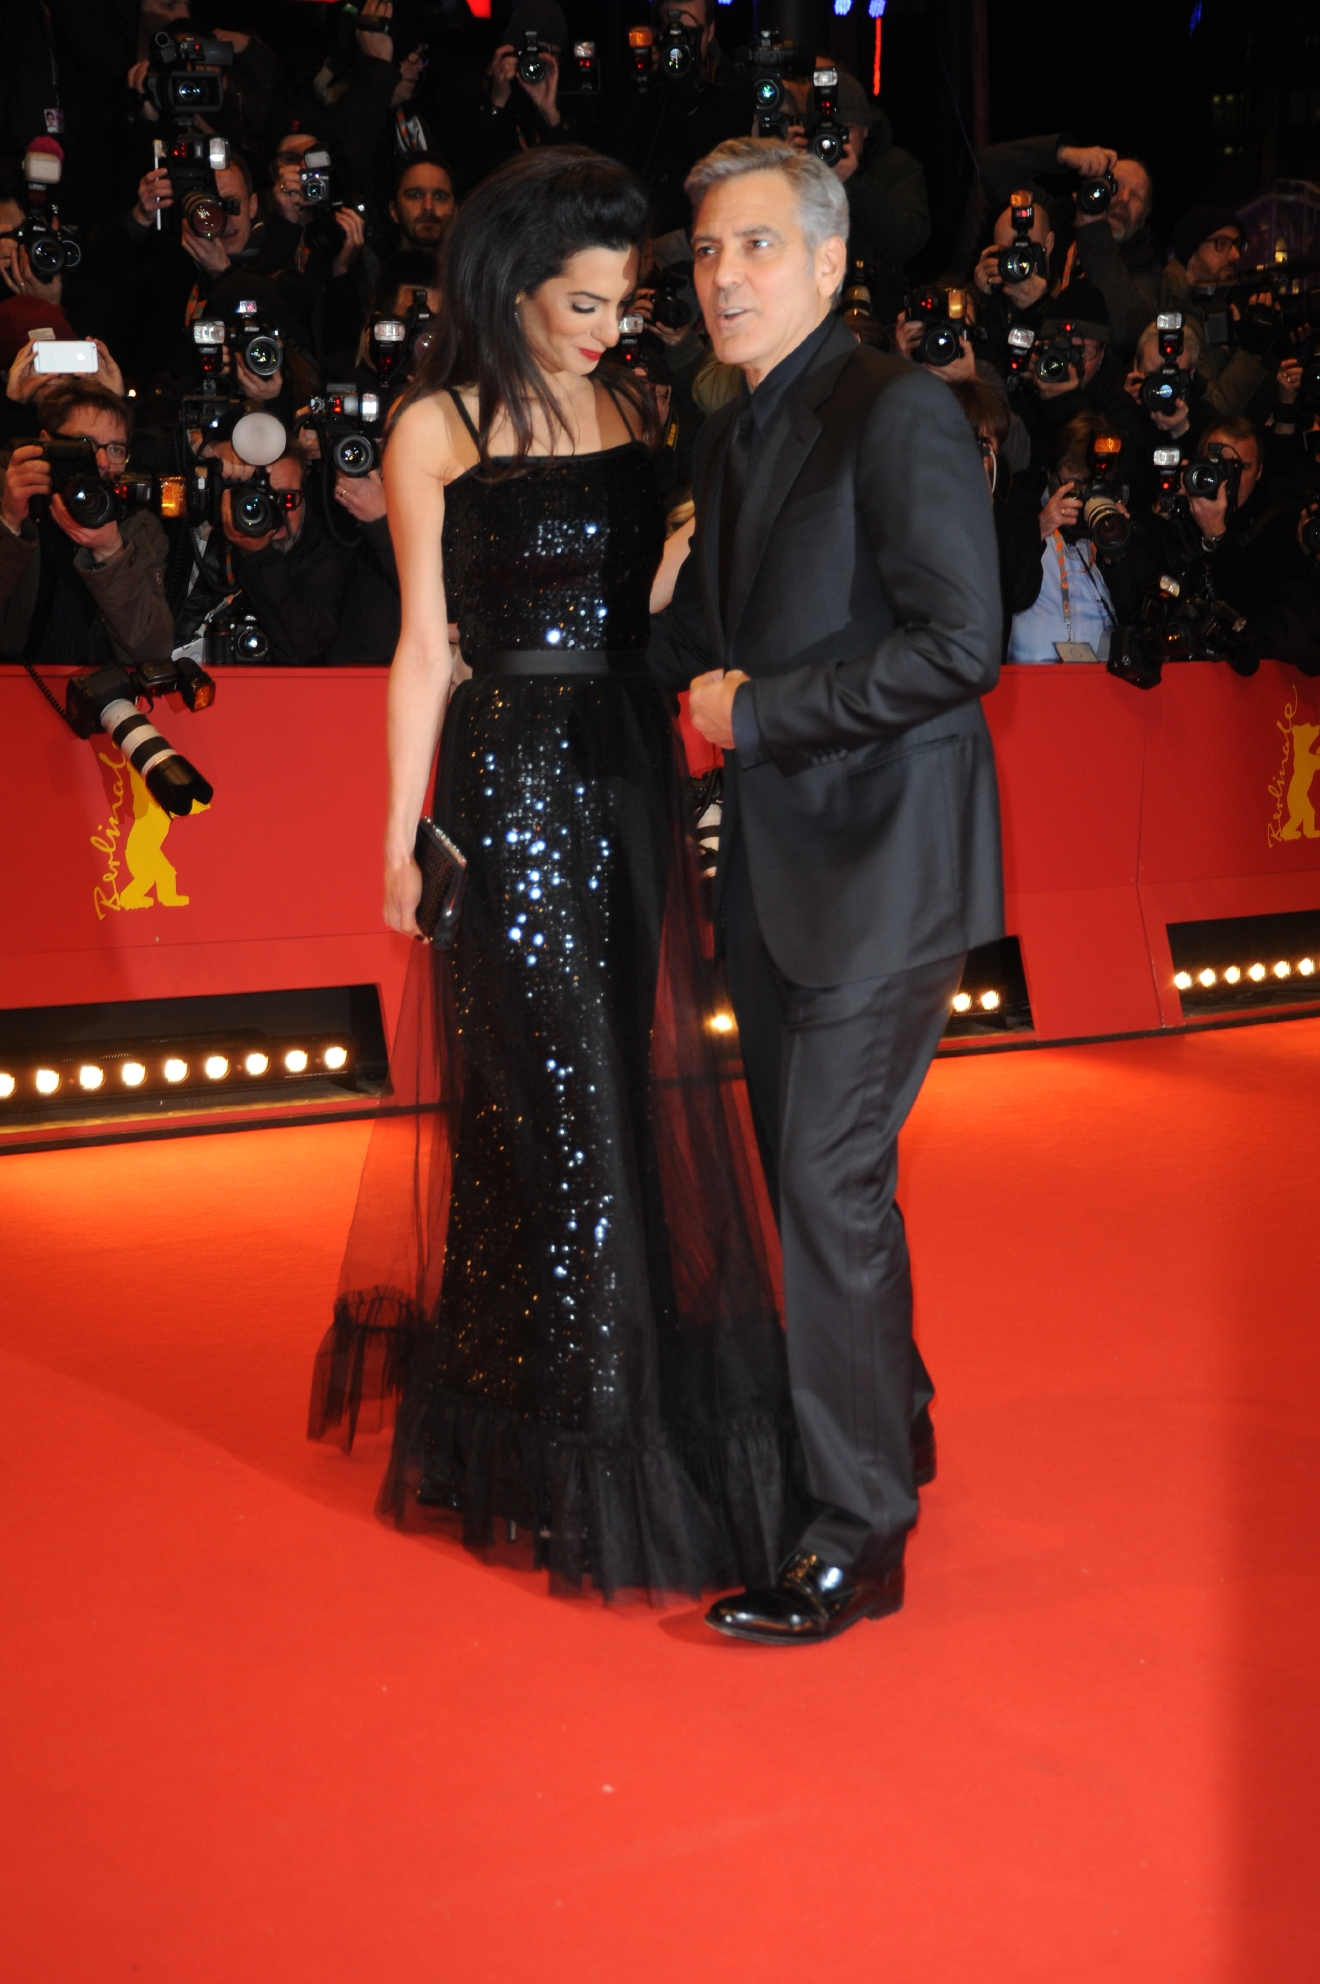 The 66th annual International Berlin Film Festival (Berlinale) - Opening Gala & Hail, Caesar! - Premiere at Berlinale Palace in Potsdamer Platz - Red Carpet Arrivals  Featuring: Amal Clooney, Georges Clooney Where: Berlin, Germany When: 11 Feb 2016 Credit: WENN.com  **Not available for publication in France**